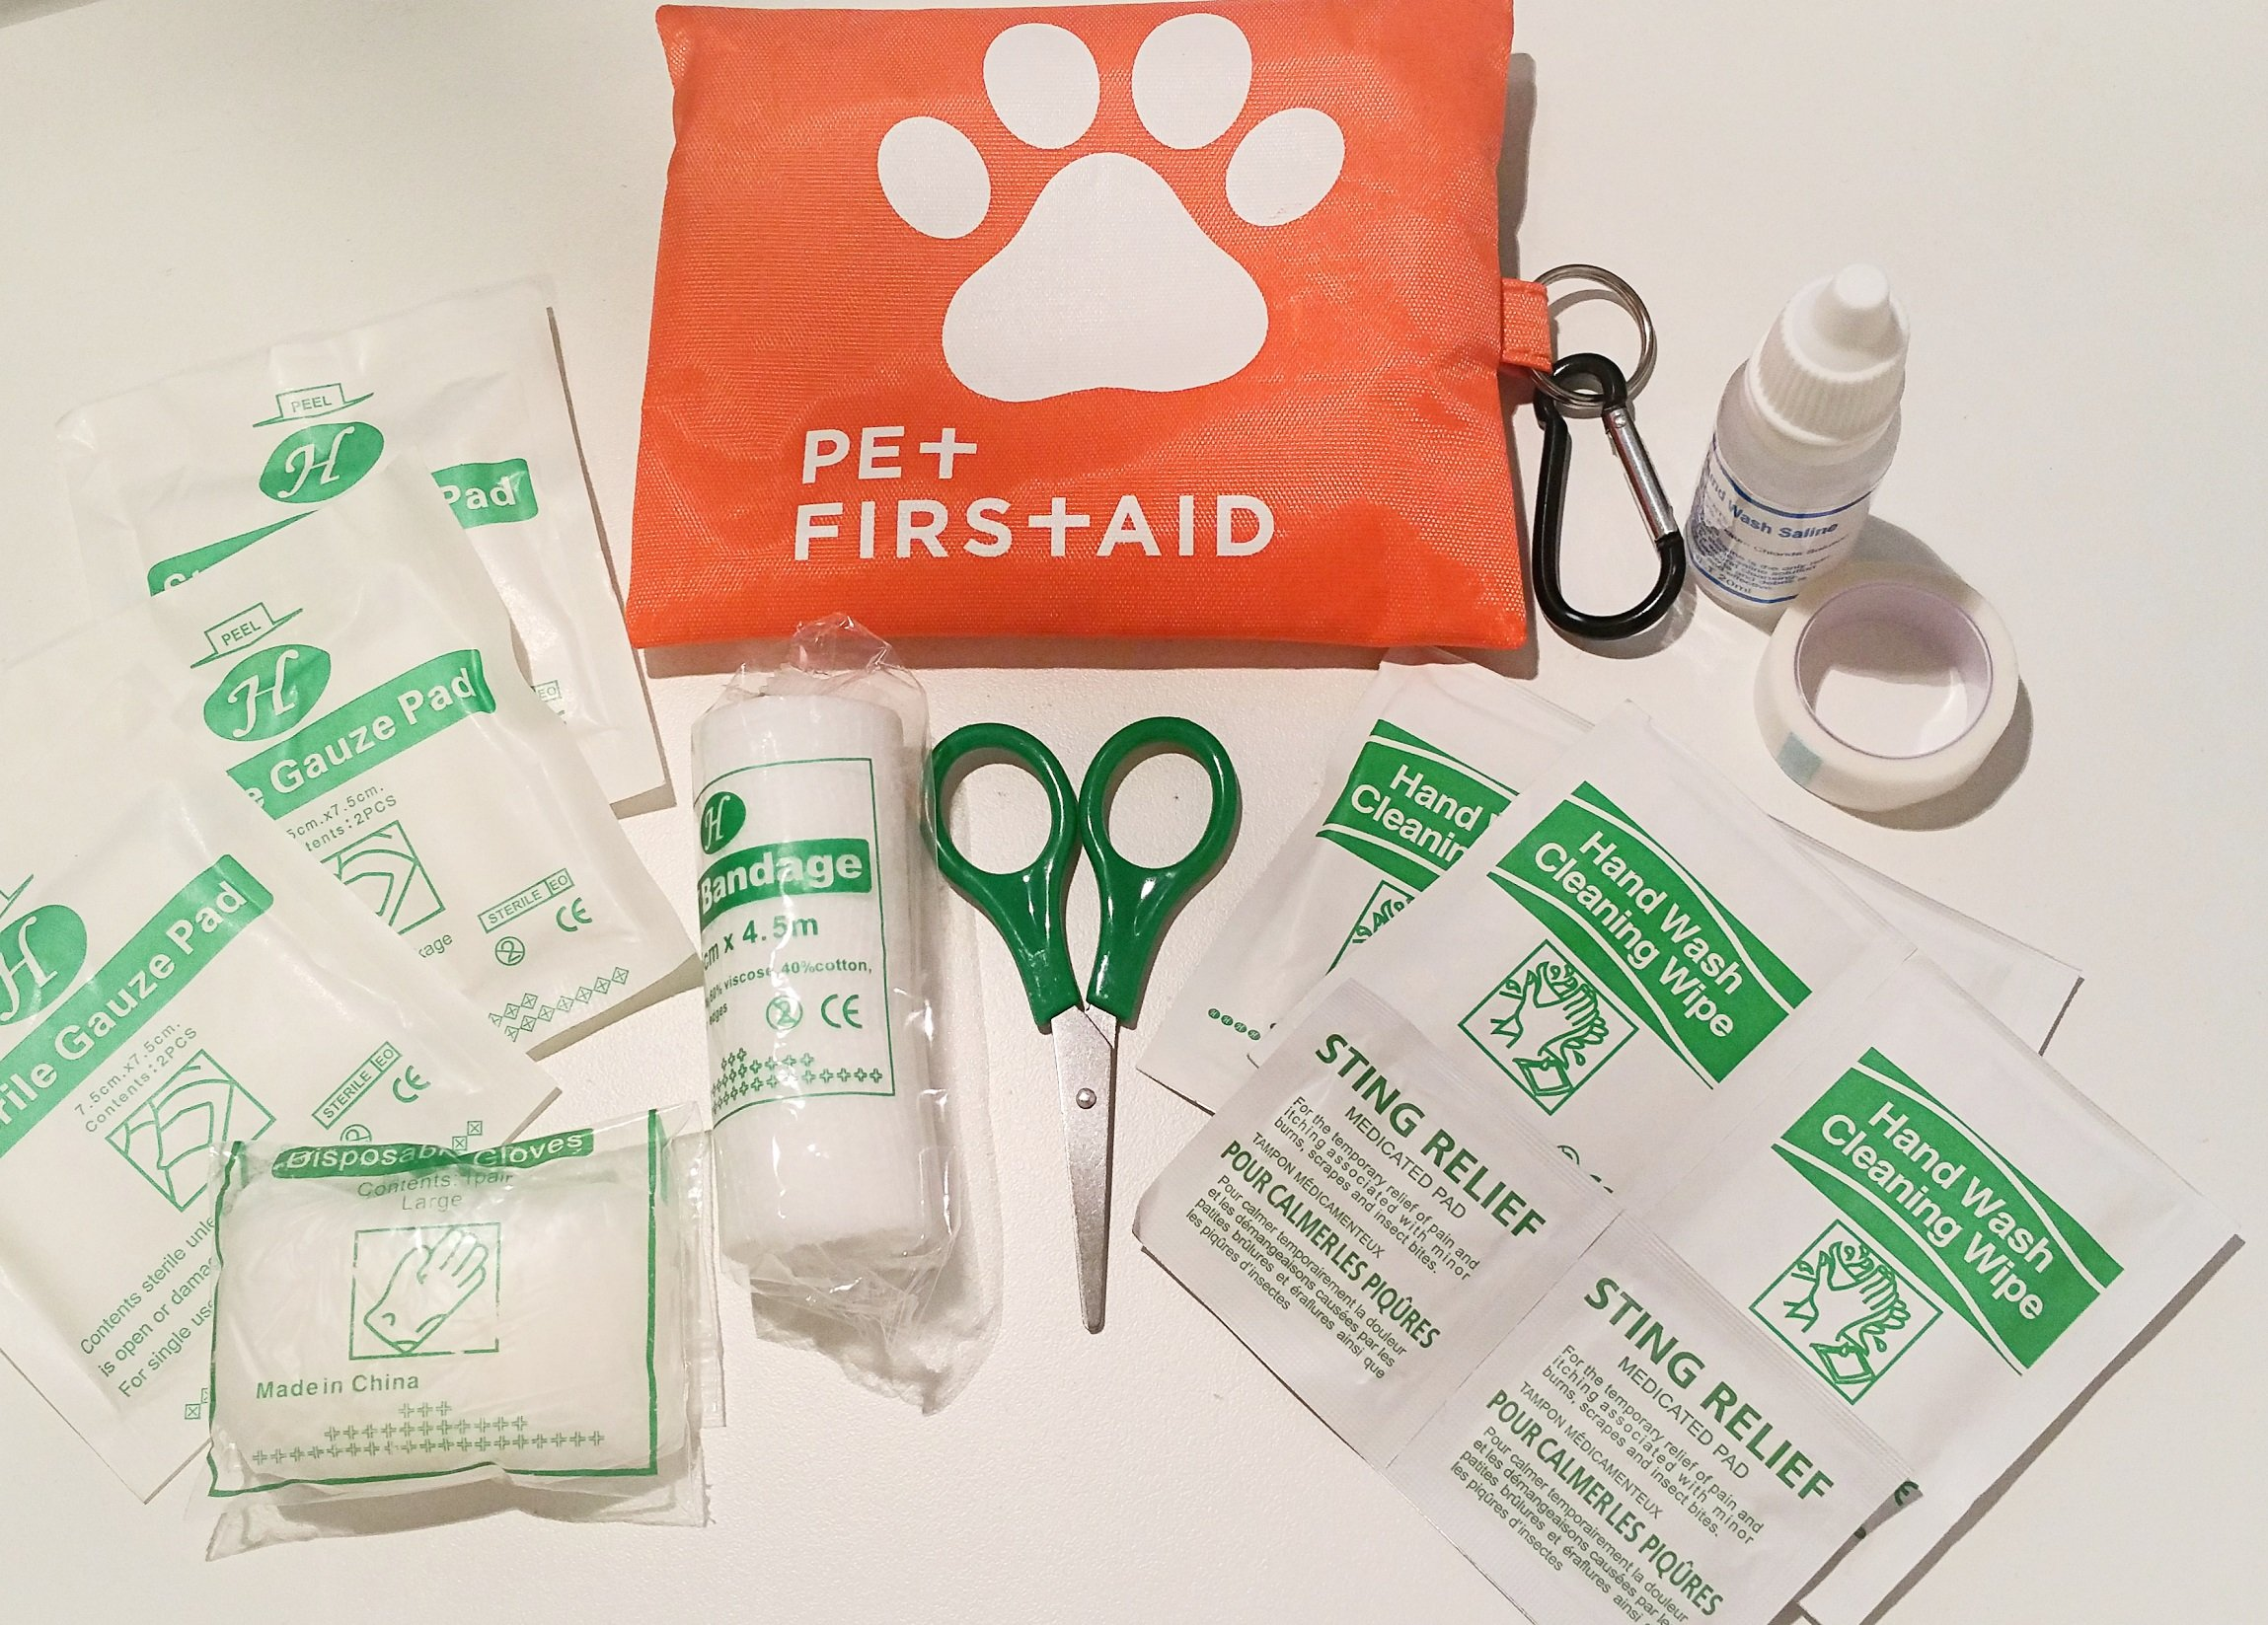 Buy Pet First Aid Now!